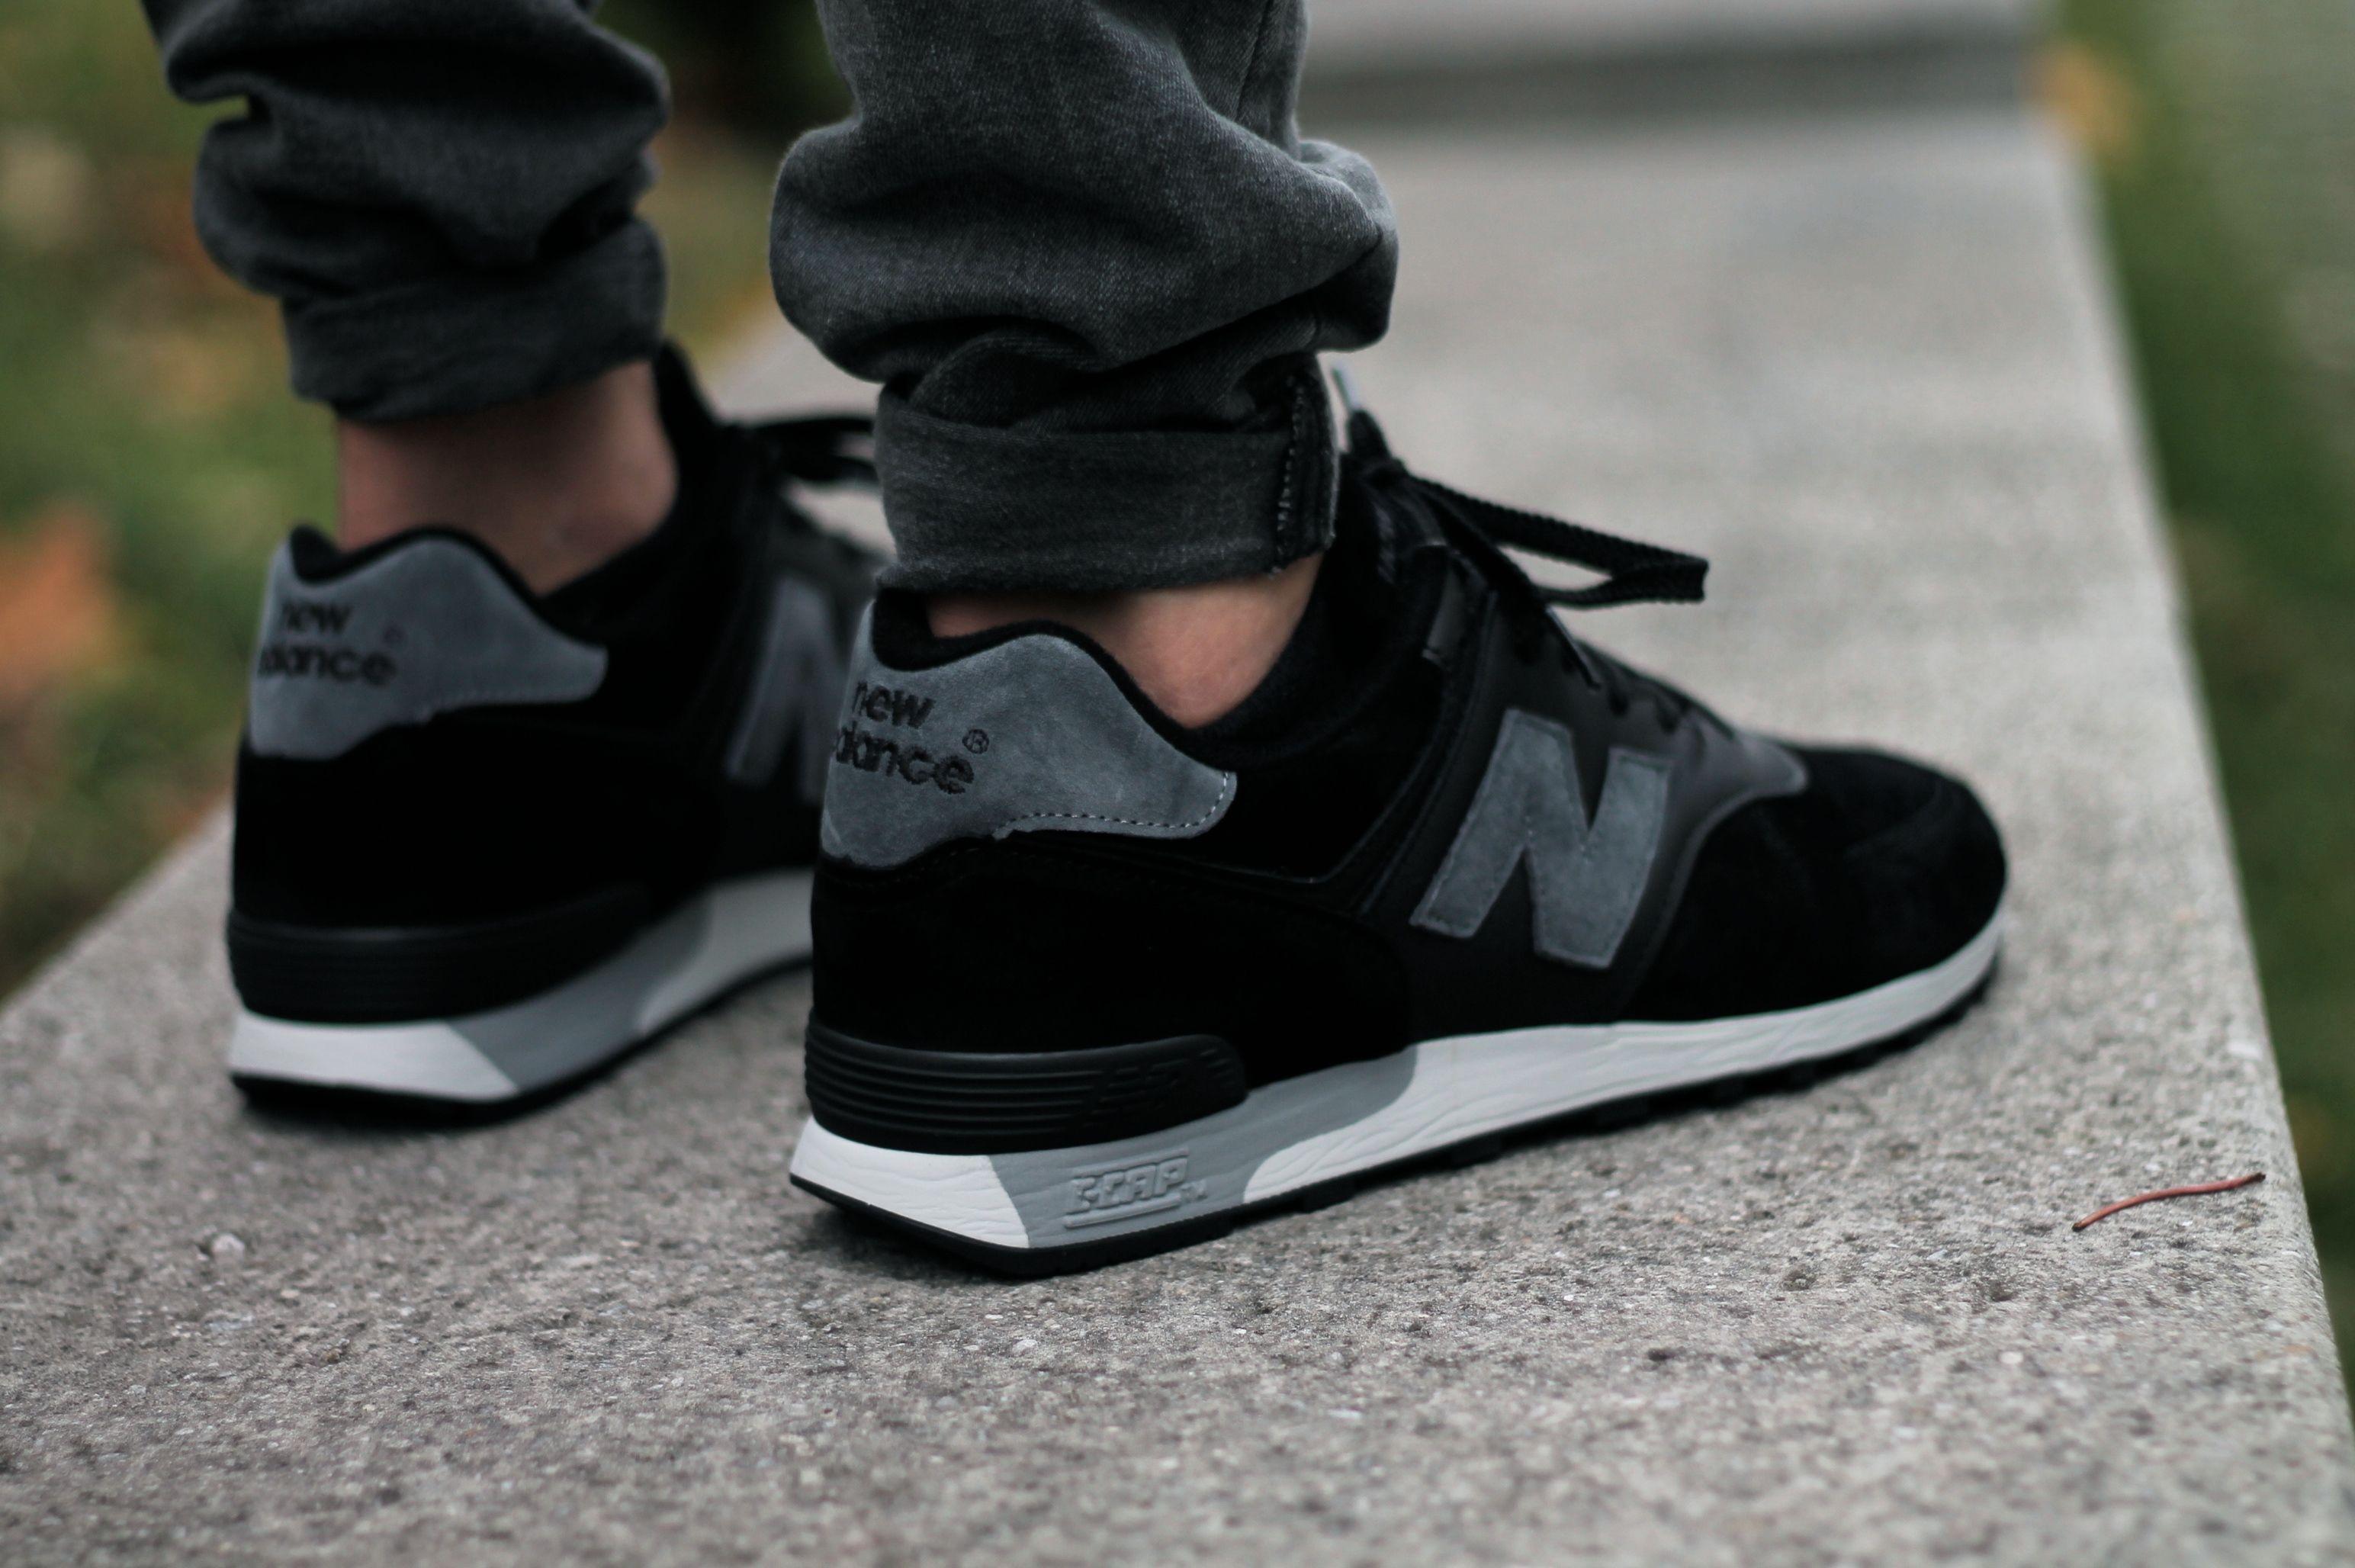 New Balance 576PLK http://shop.the-upper-club.com